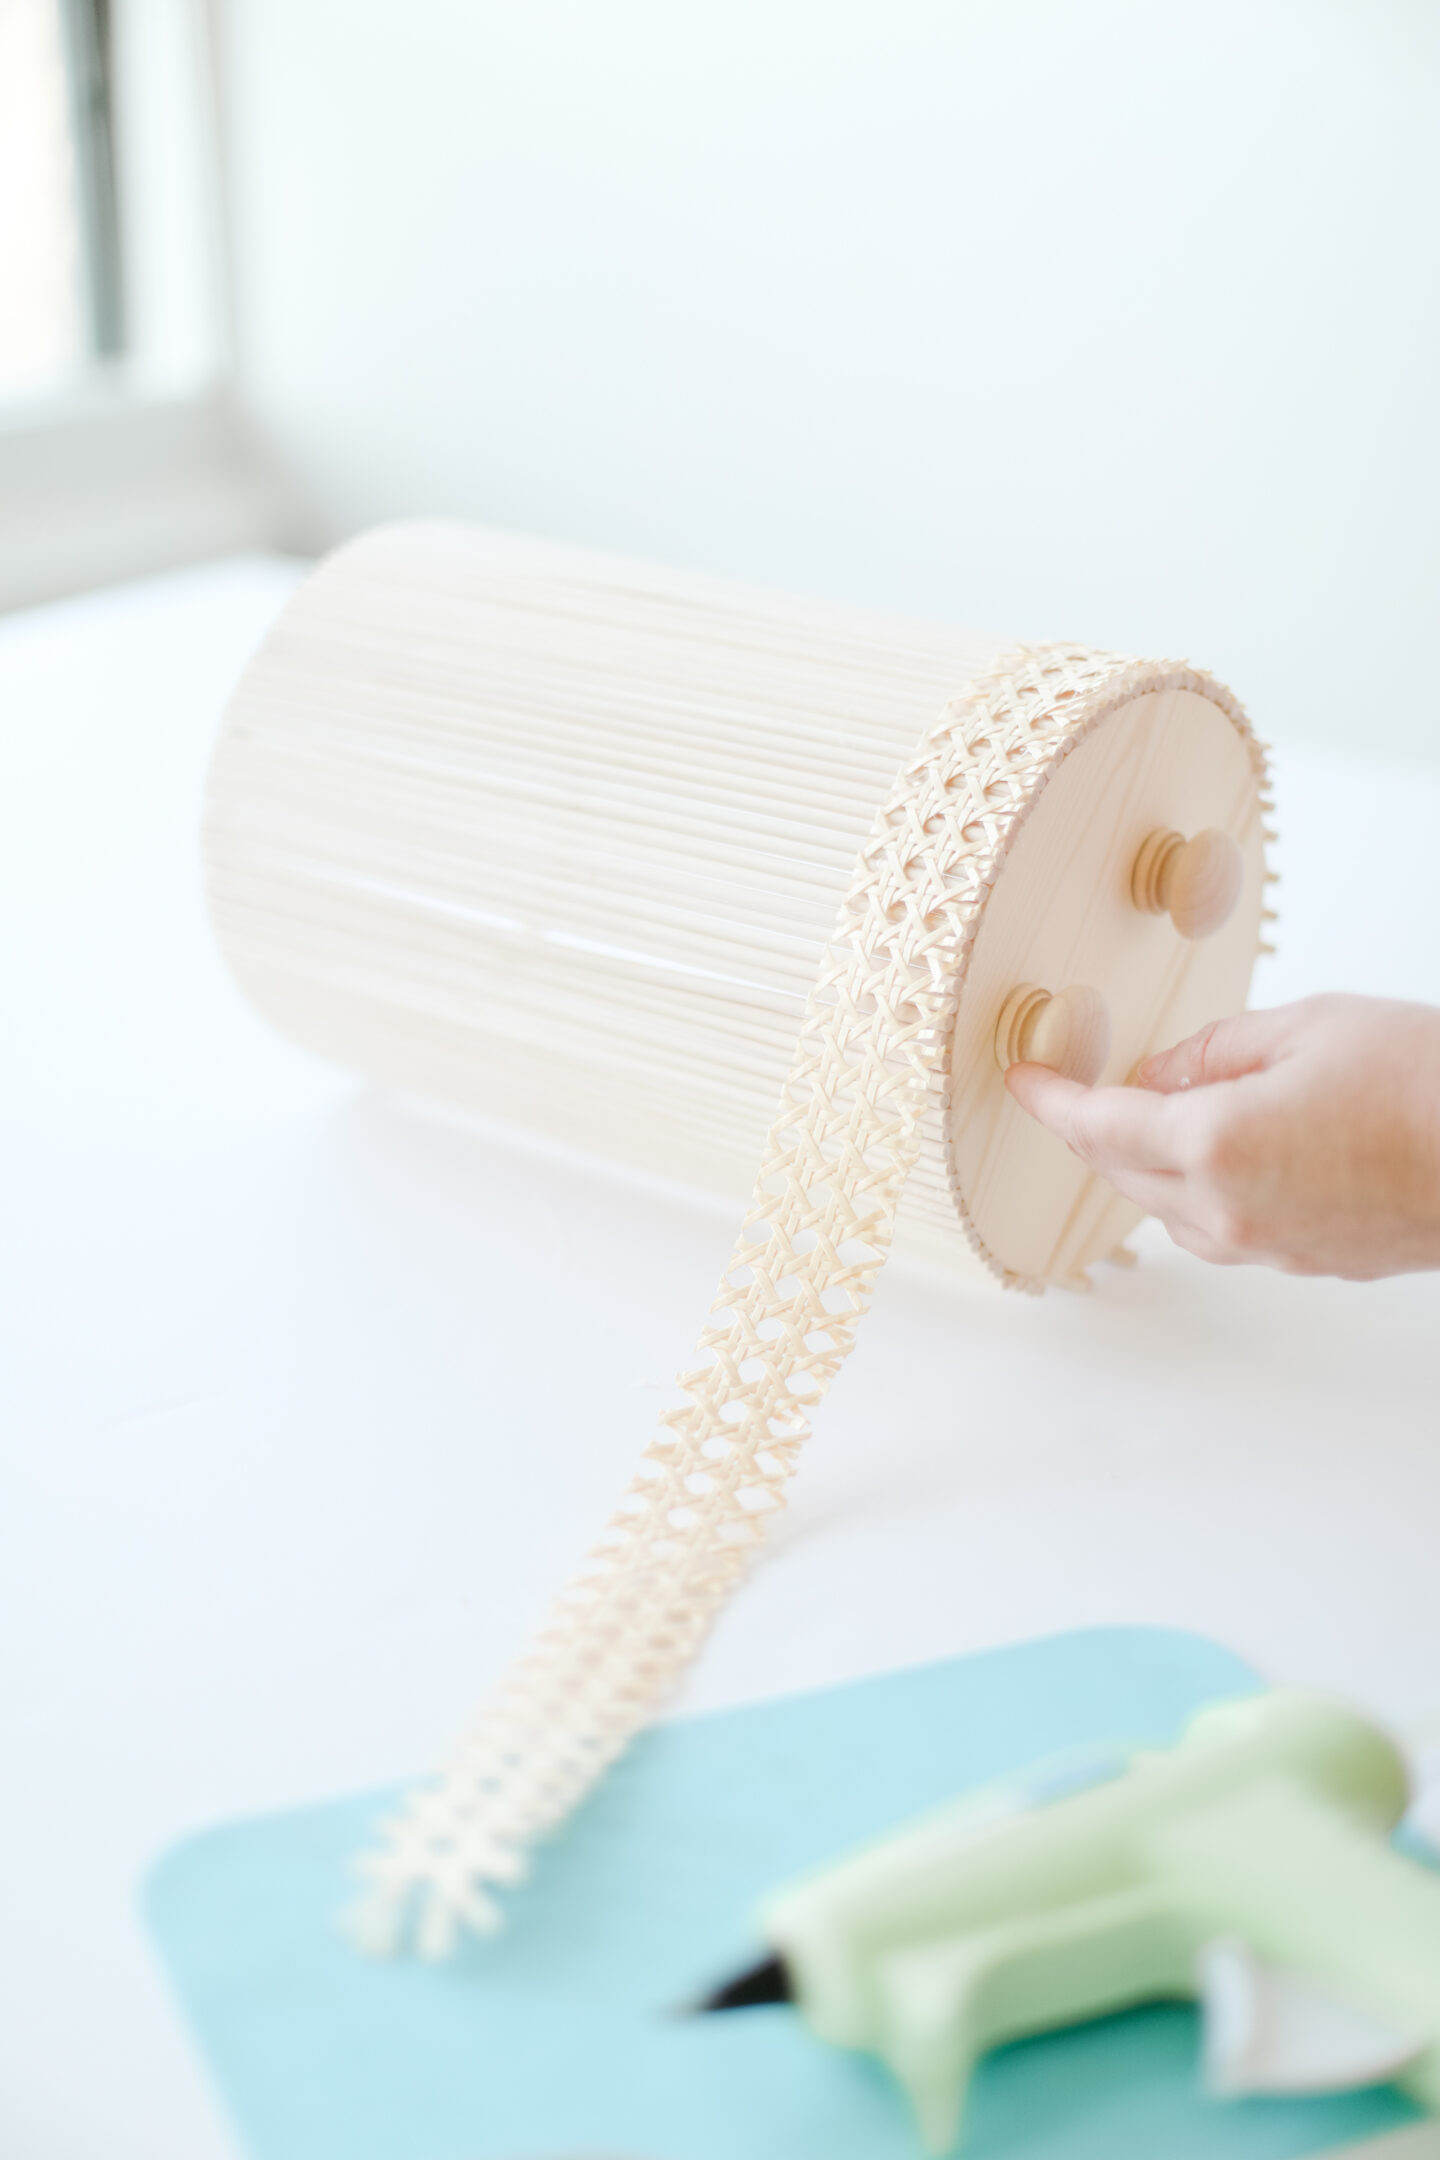 Adding cane to a scandi floral vase DIY